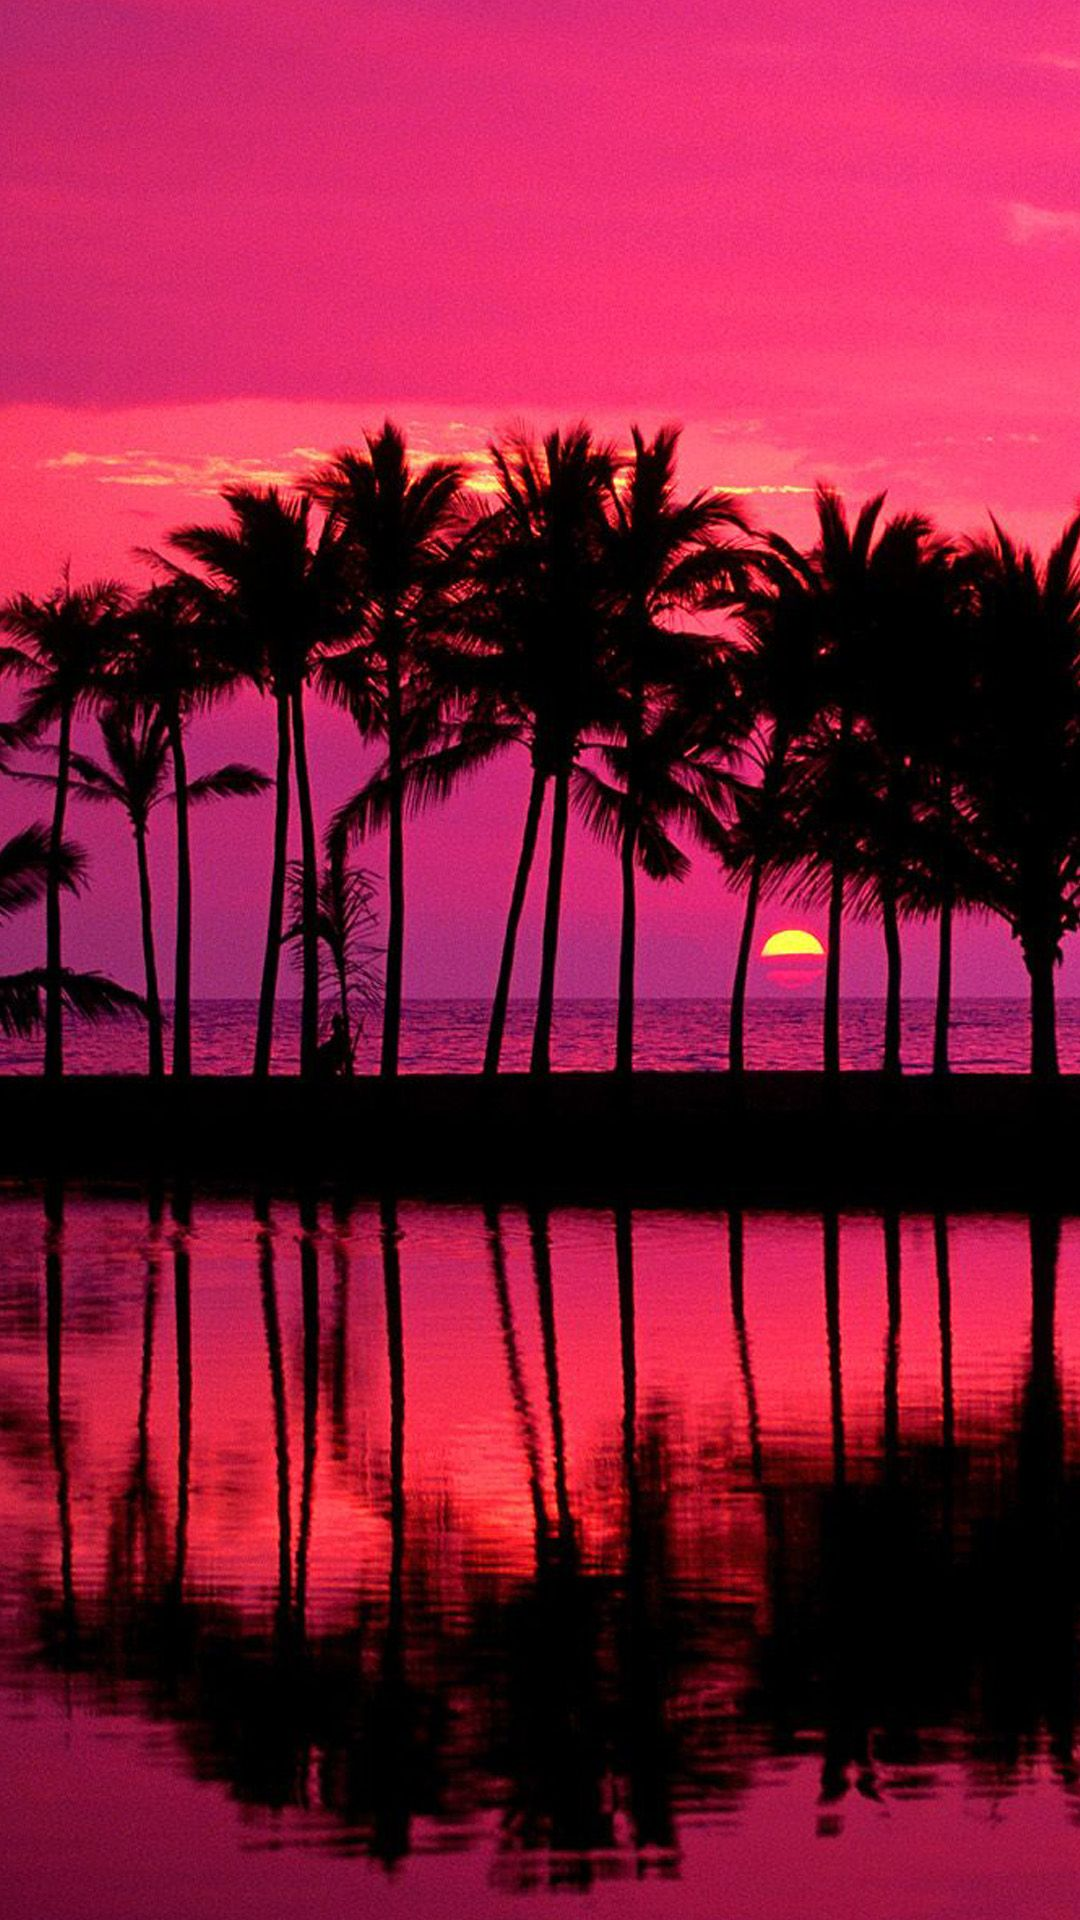 hawaiian sunset. iphone wallpapers of nature landscape, sunset view